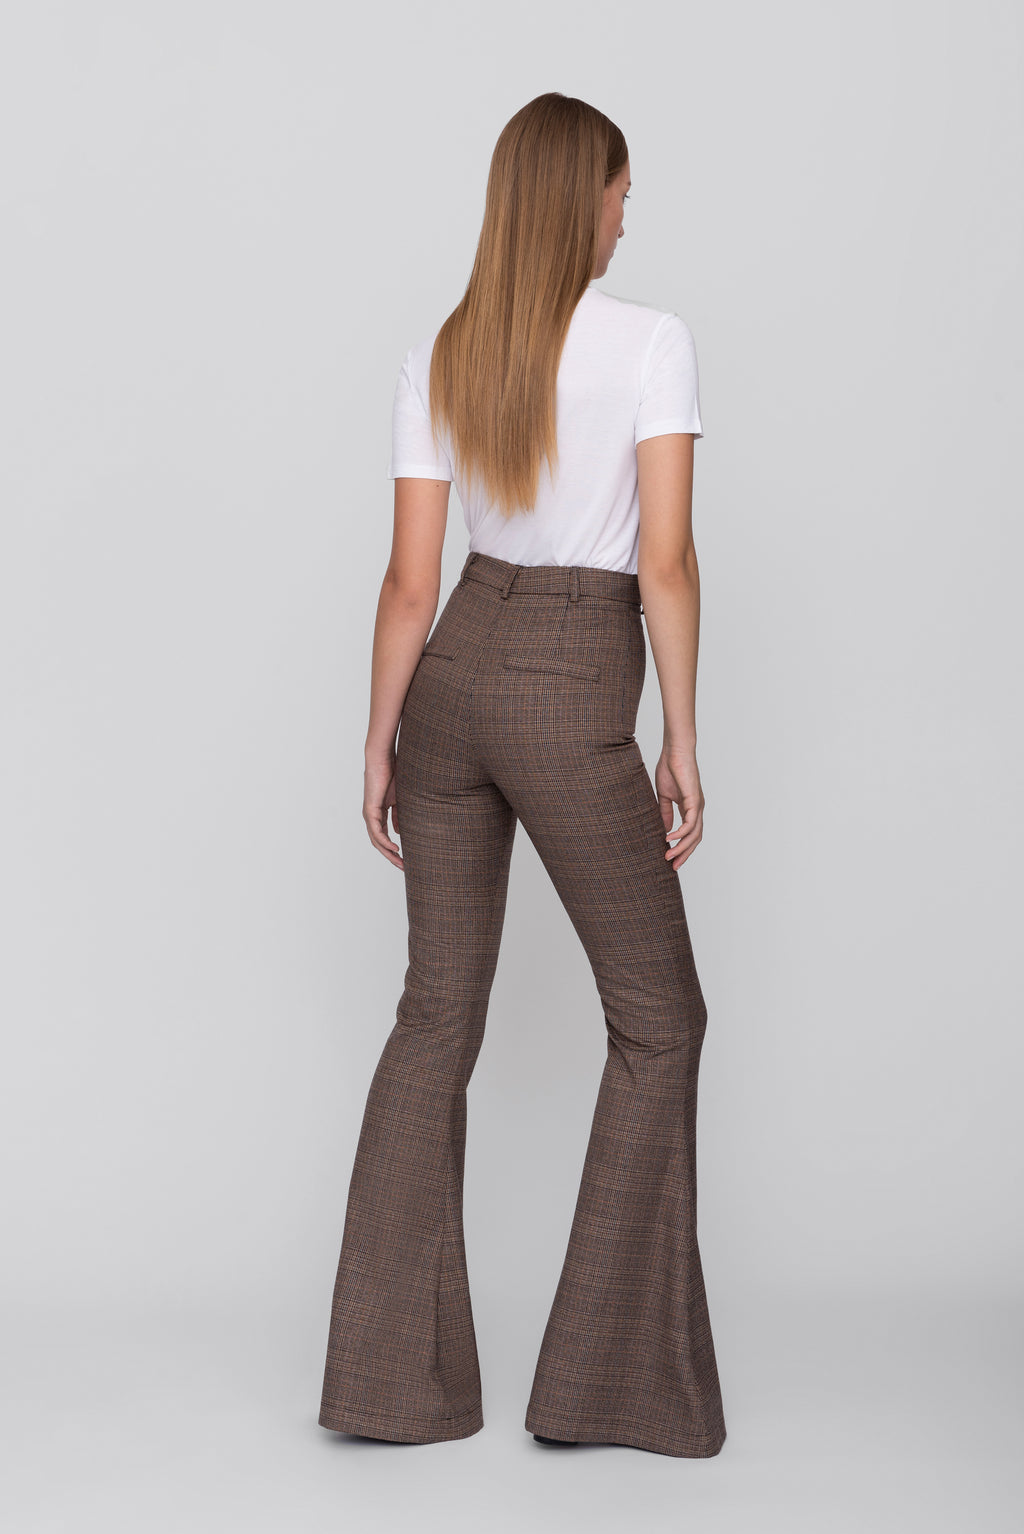 The Bianca Galles Pants